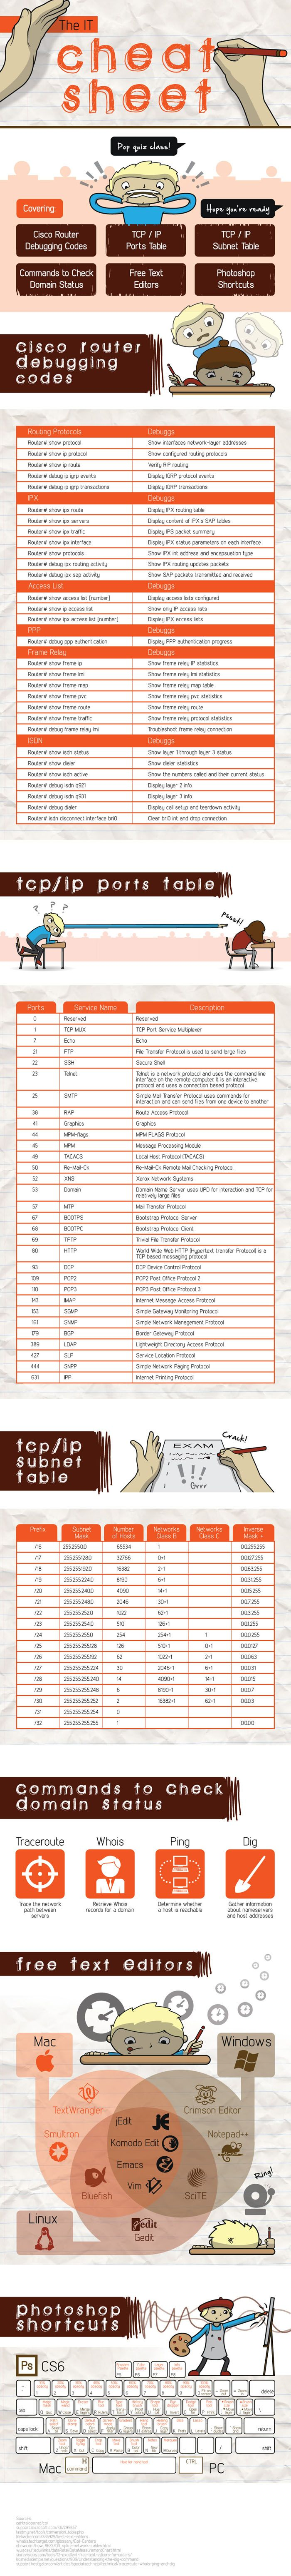 IT Cheat Sheet. Information Technology Shortcuts and Helpful Codes